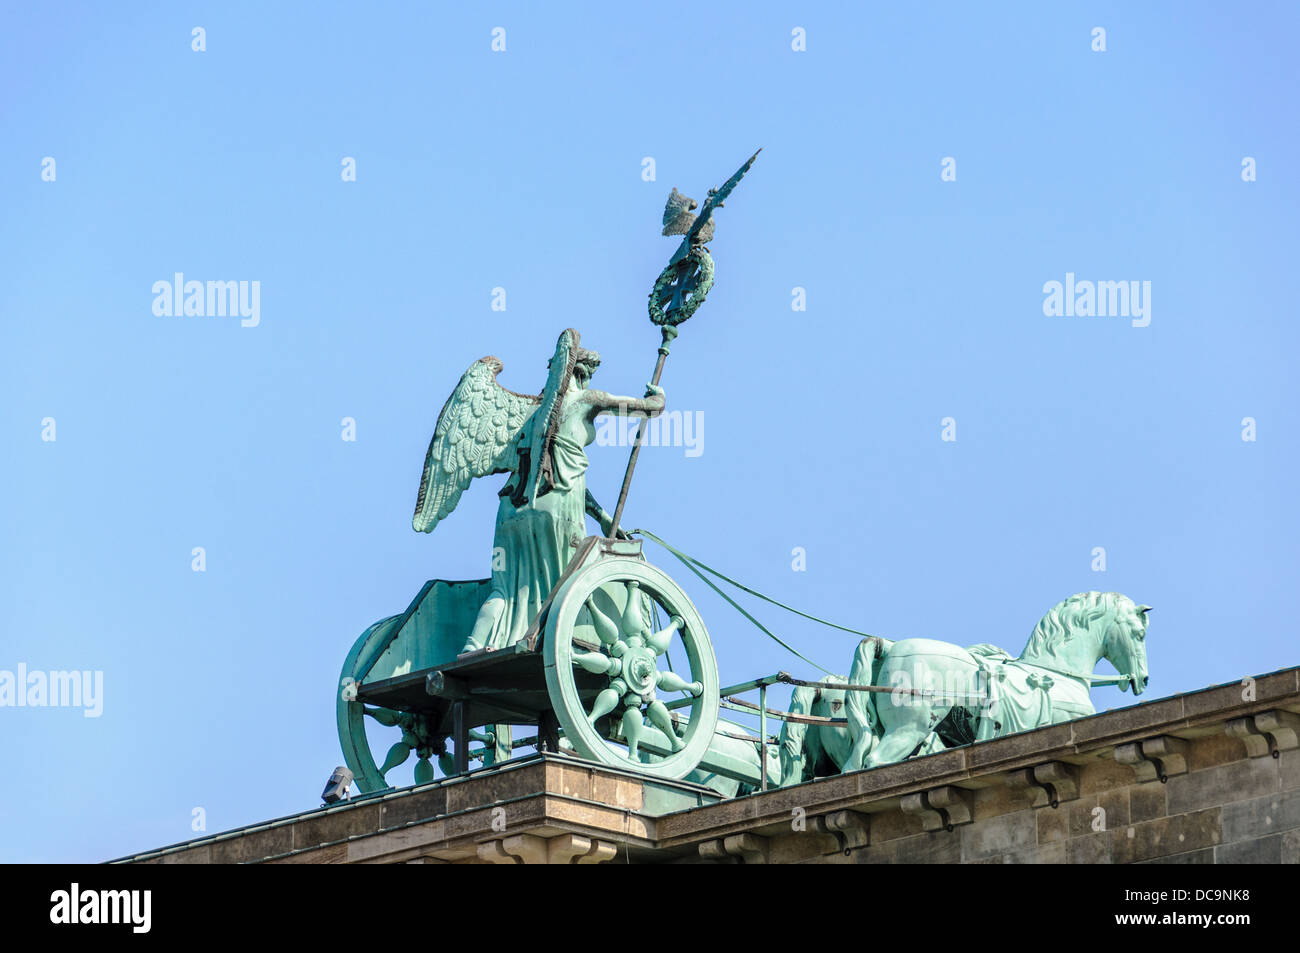 The Berlin Quadriga statue on top of of the Brandenburg Gate - Berlin Germany Stock Photo